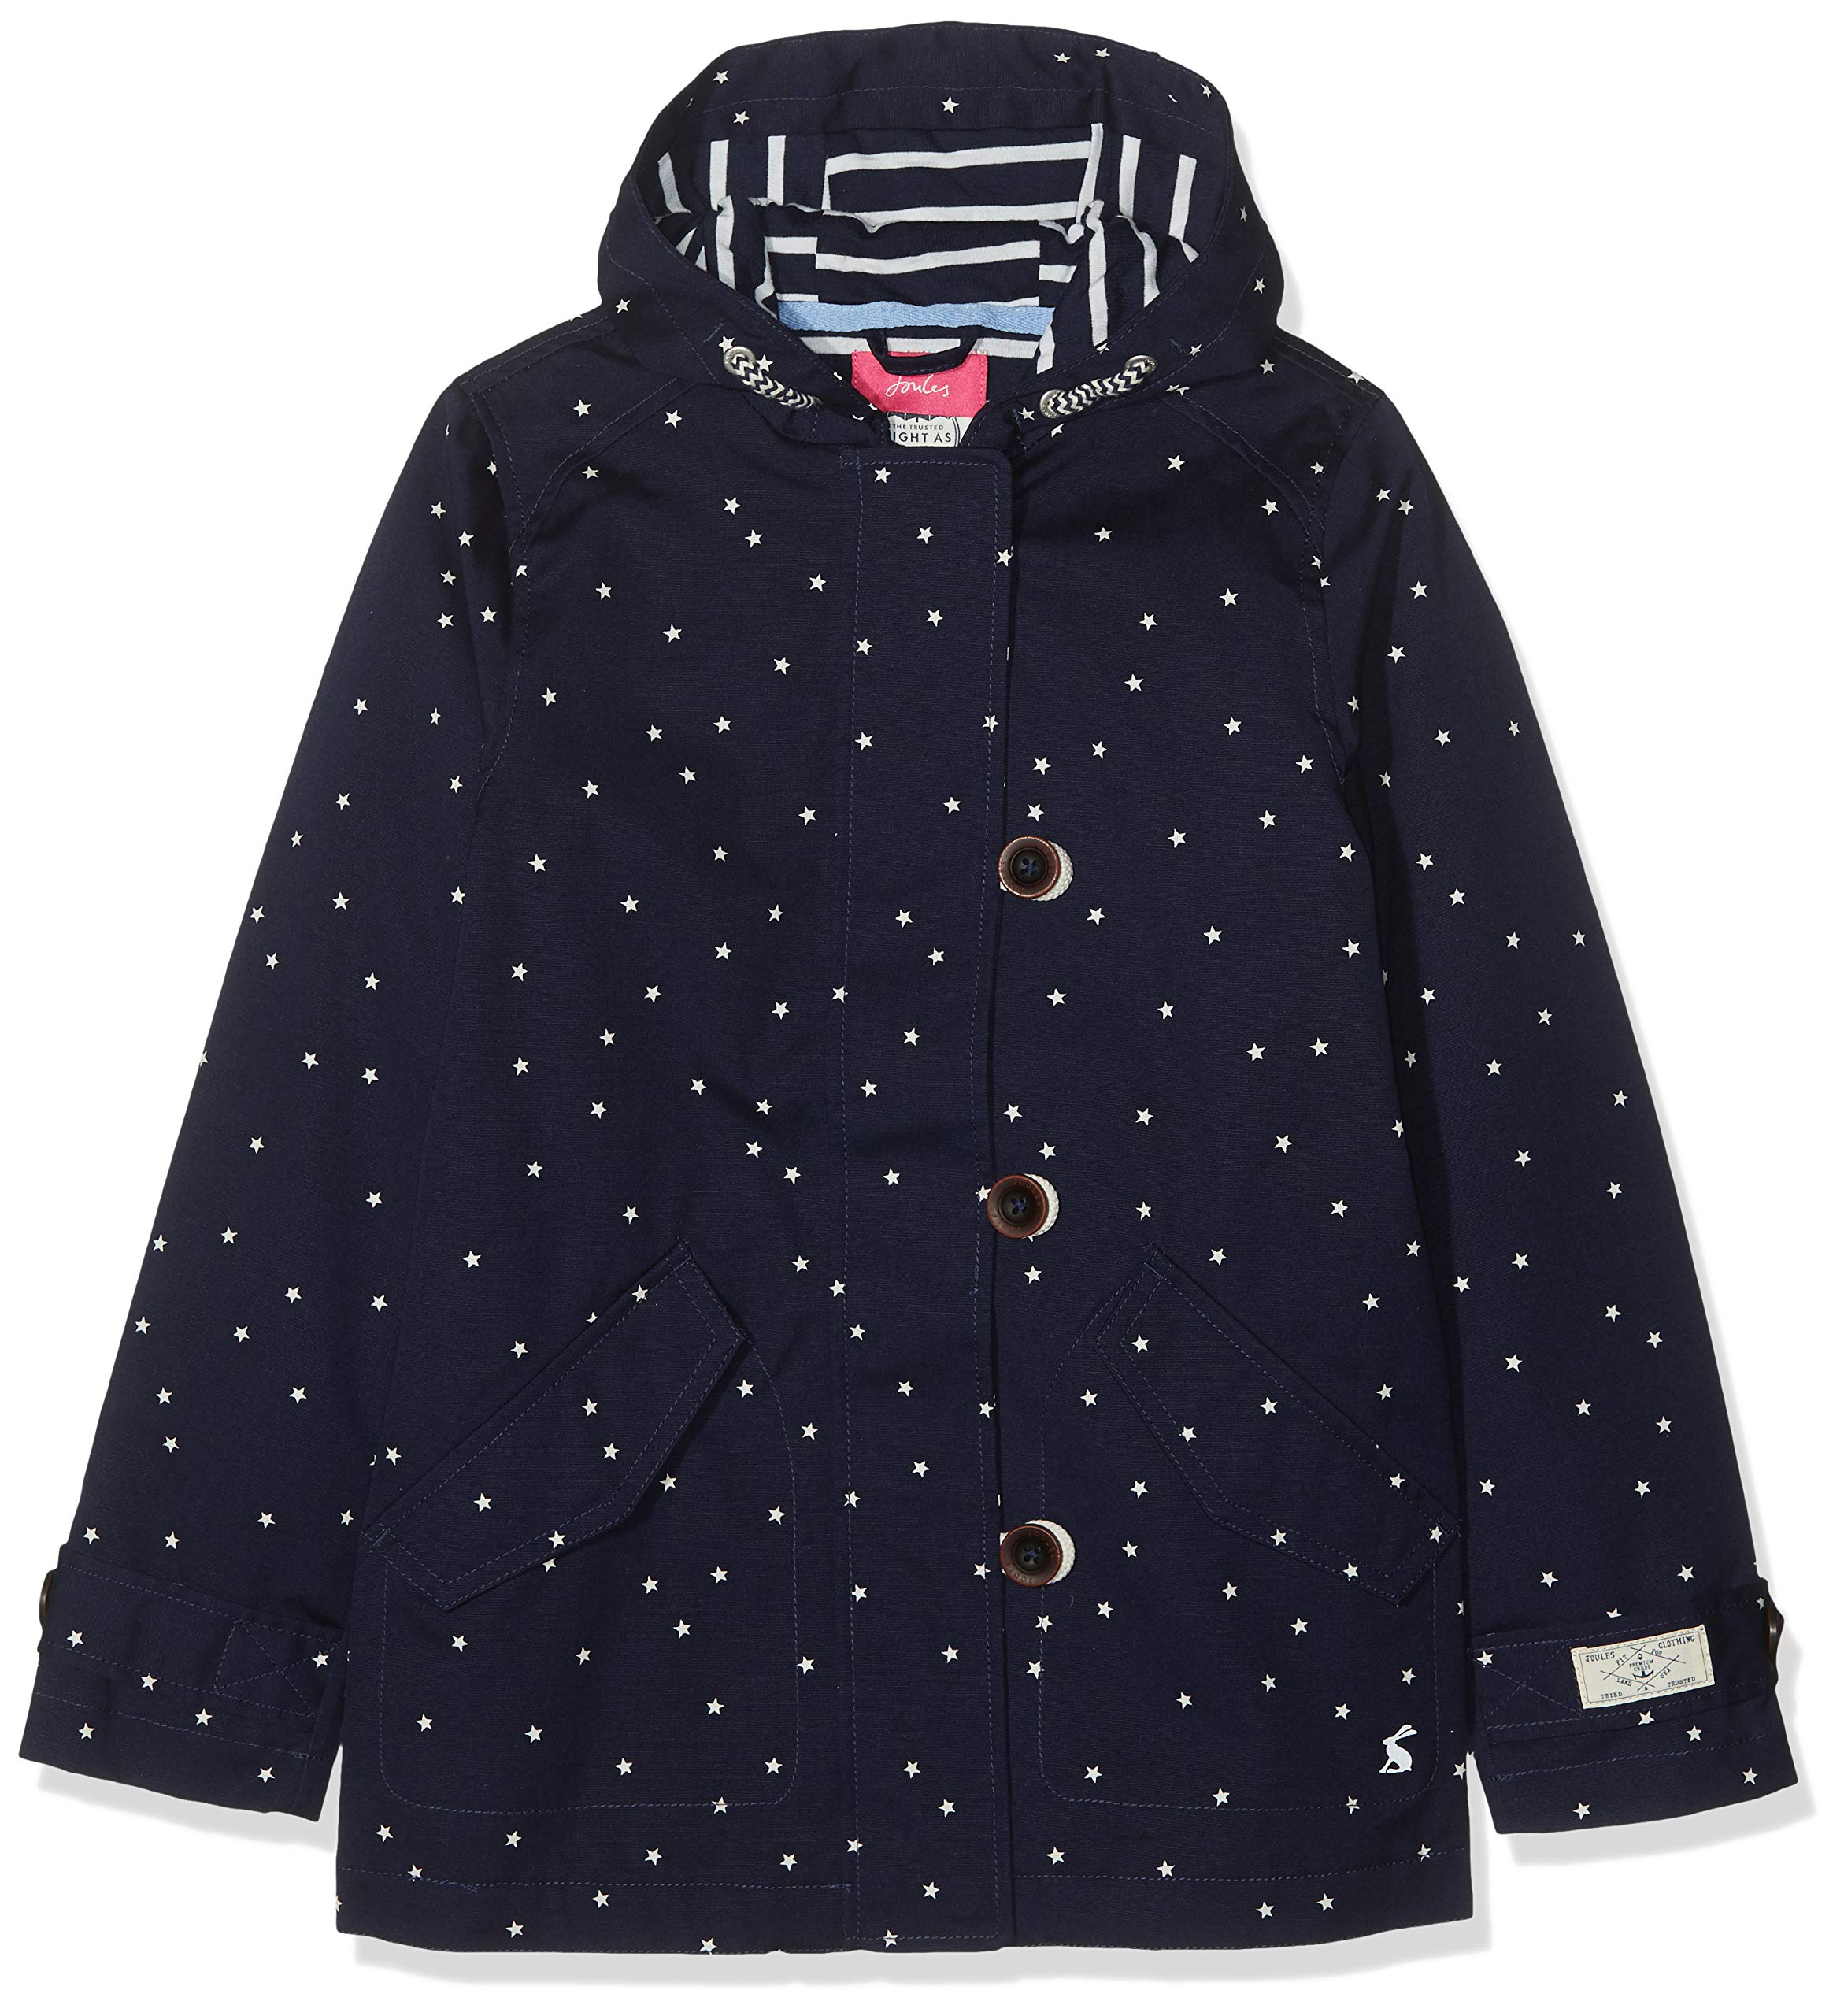 Joules Outerwear Girls' Little Coast, Navy Star, 5 by Joules Outerwear